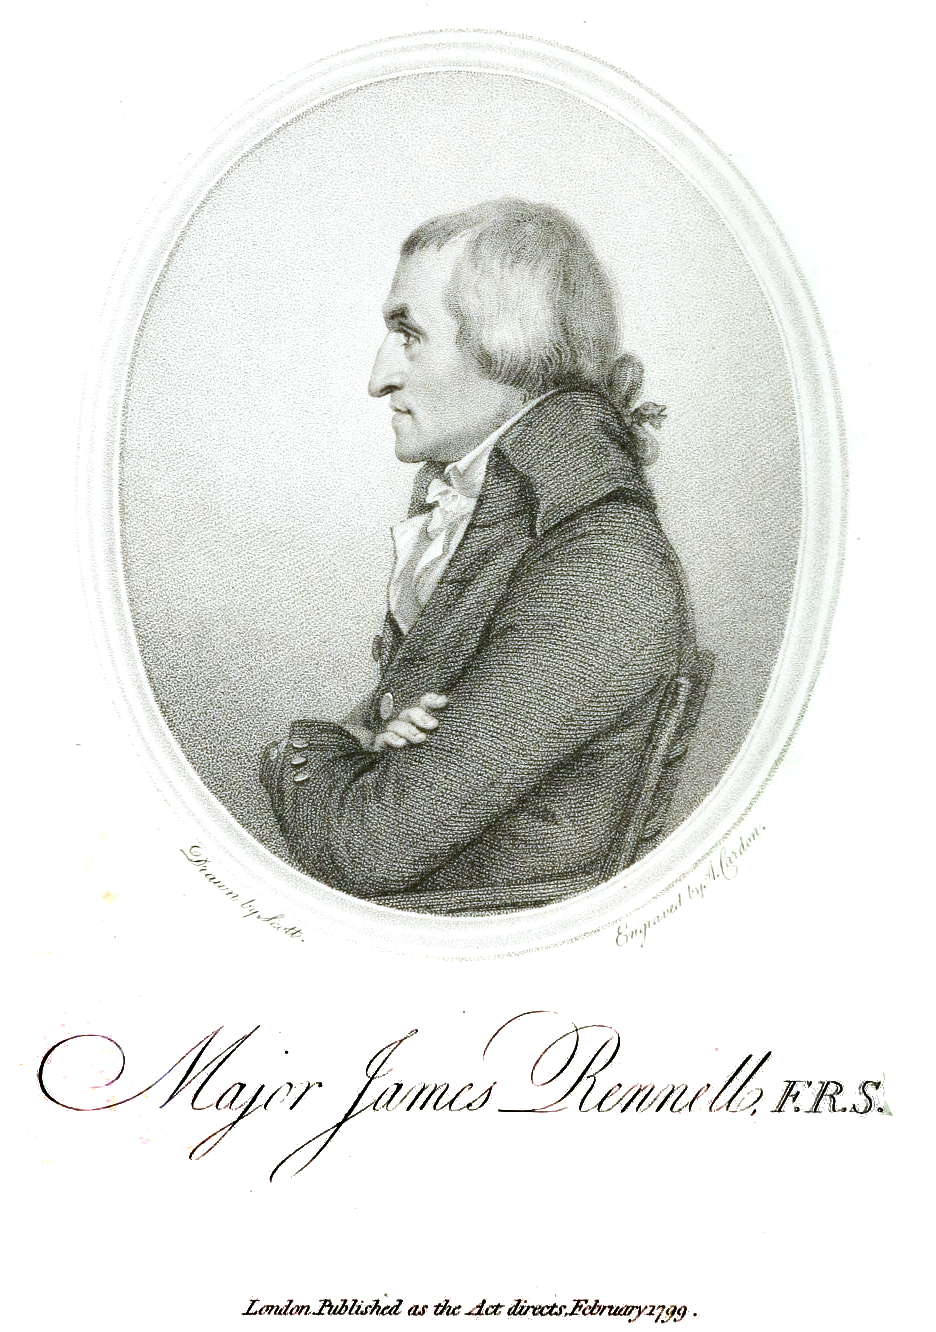 Profile engraving of James Rennell (1799)